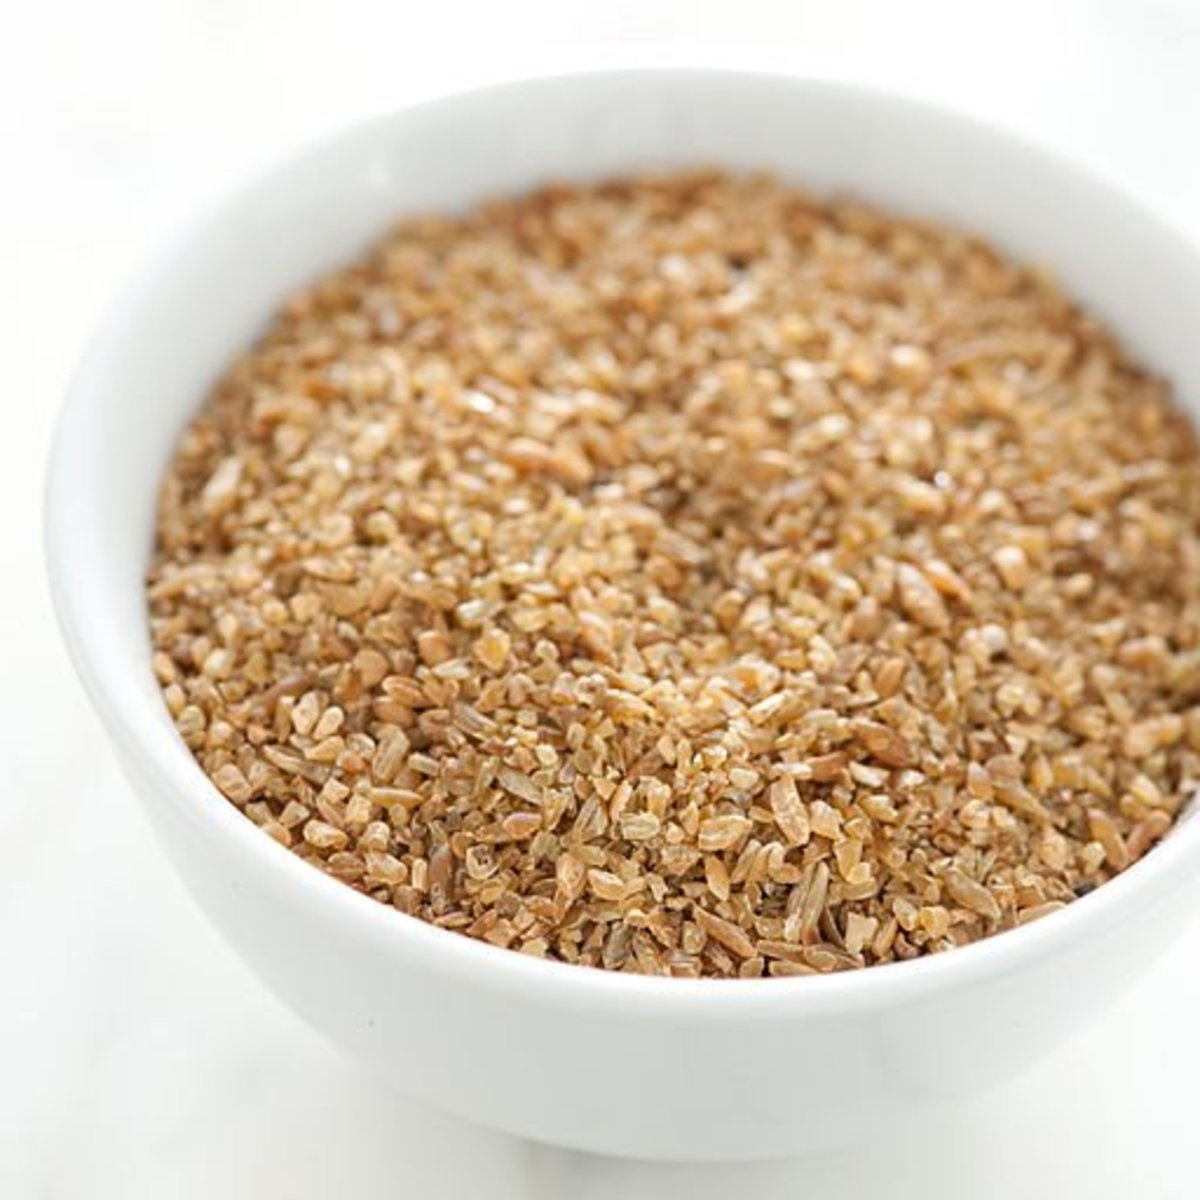 Uncooked Freekah grains